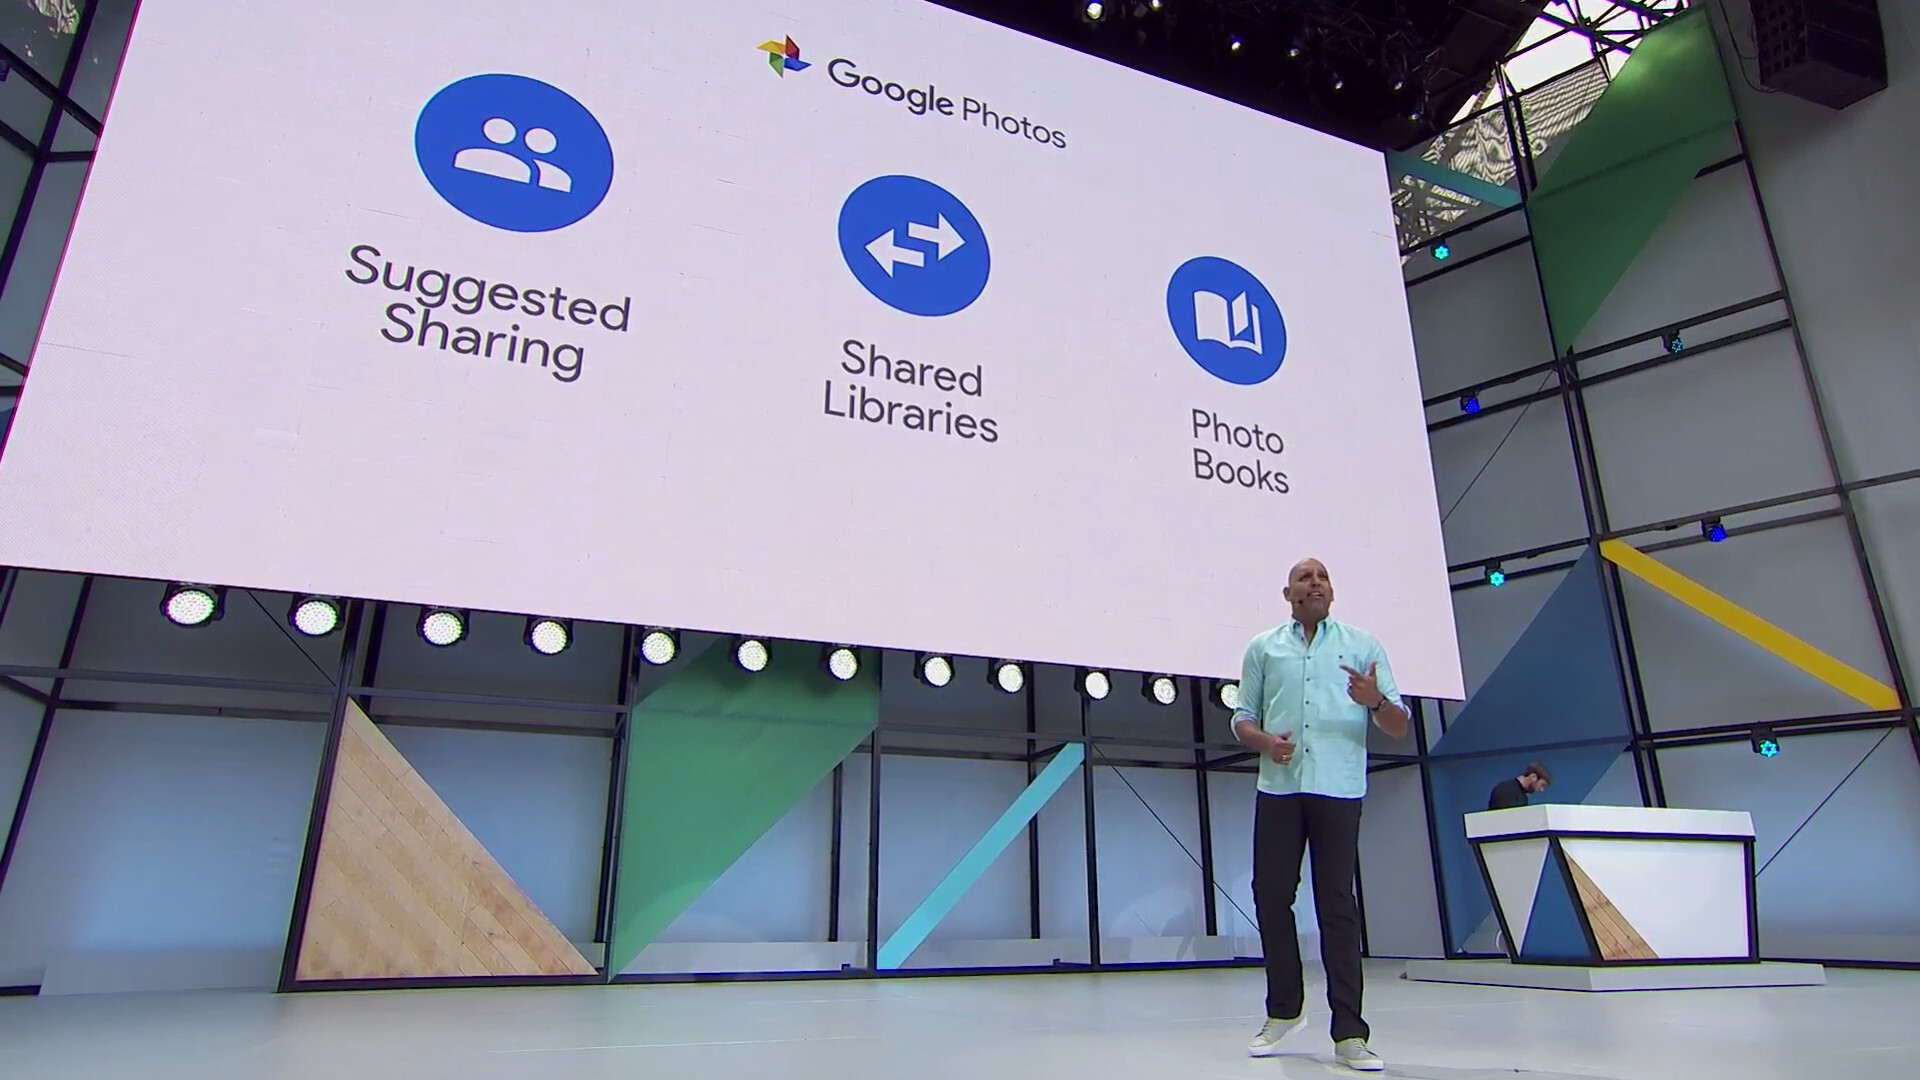 New Google Photos features will give a major boost to sharing